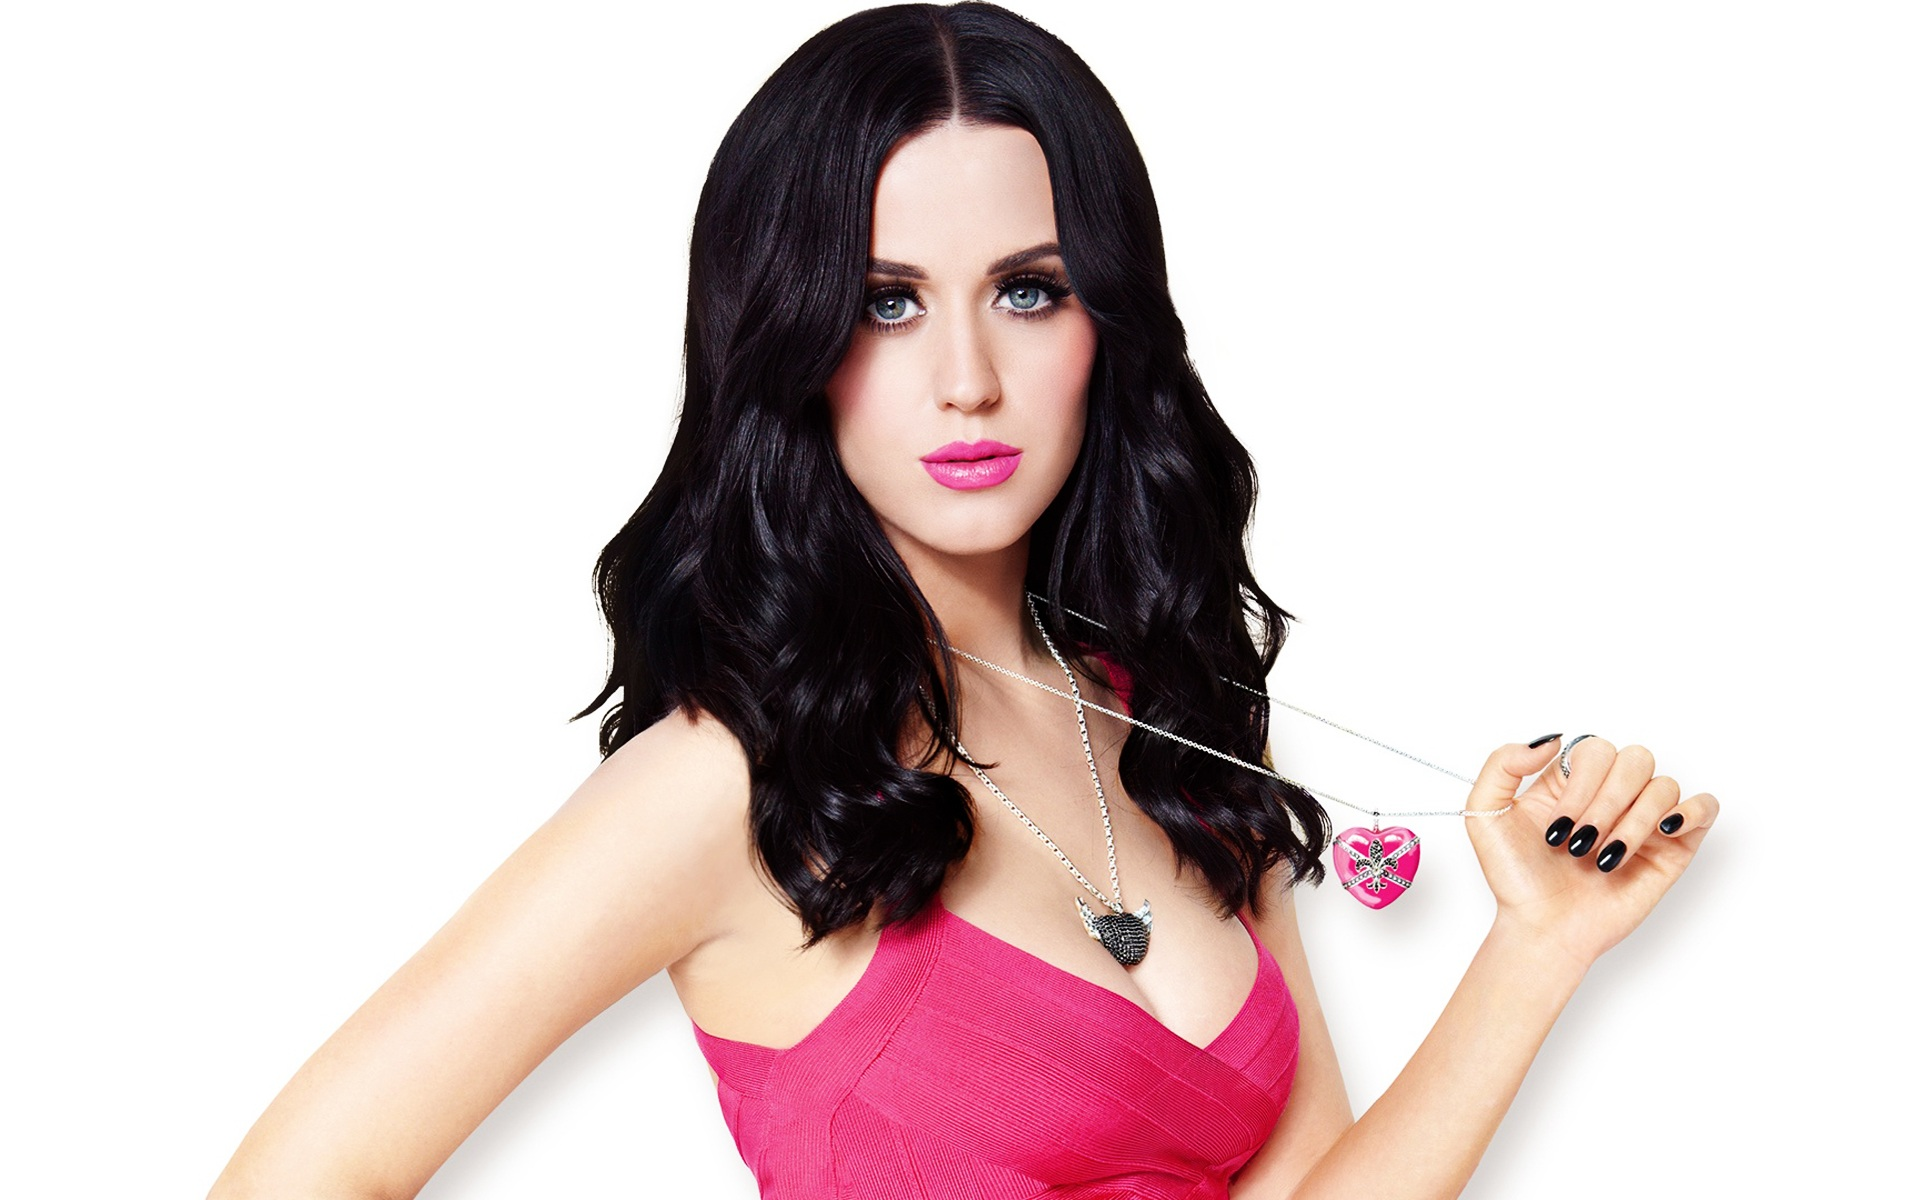 Follow Katy Perry. Fan requests: 113567